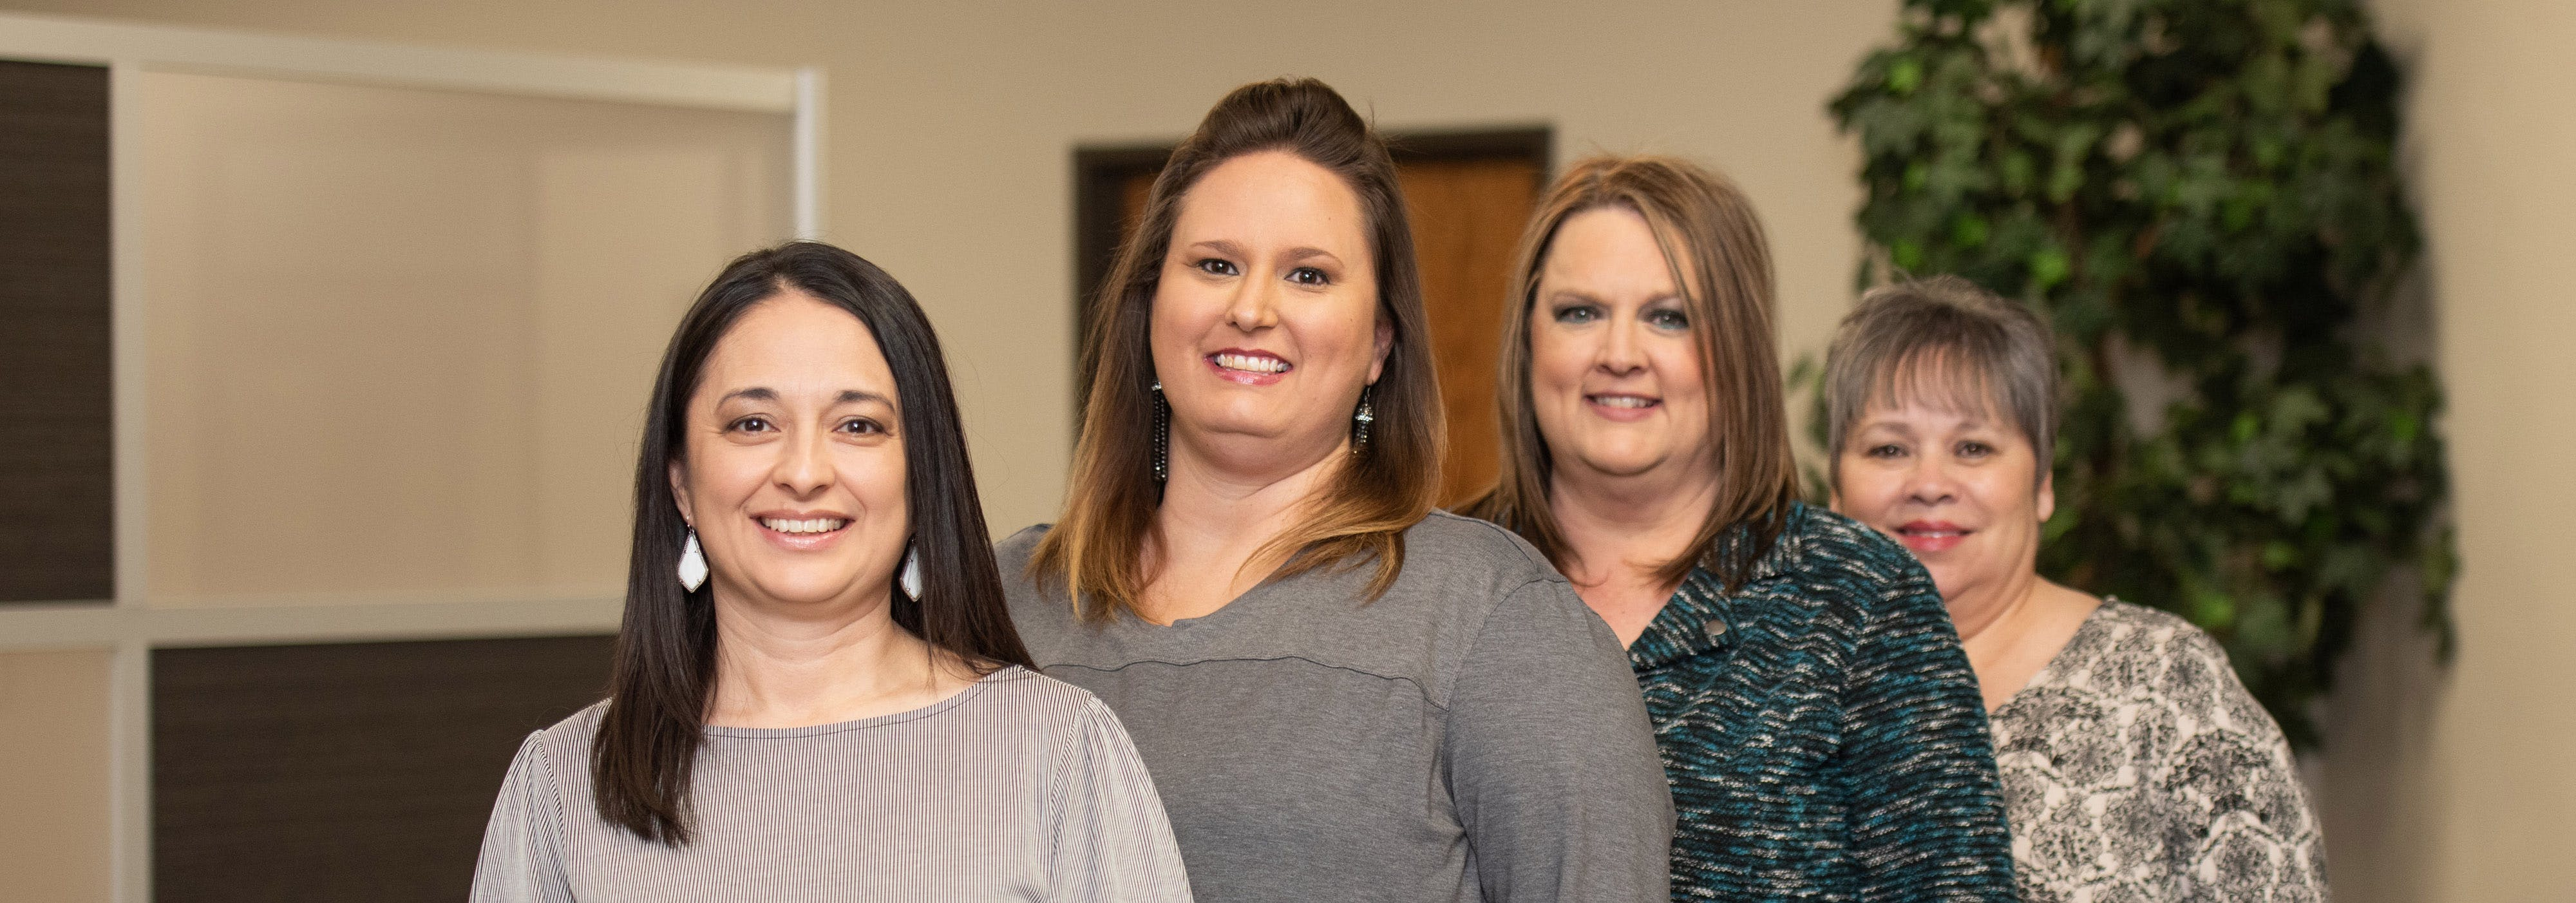 iPOW Physical Therapy & Fitness Office Staff | Armarillo TX